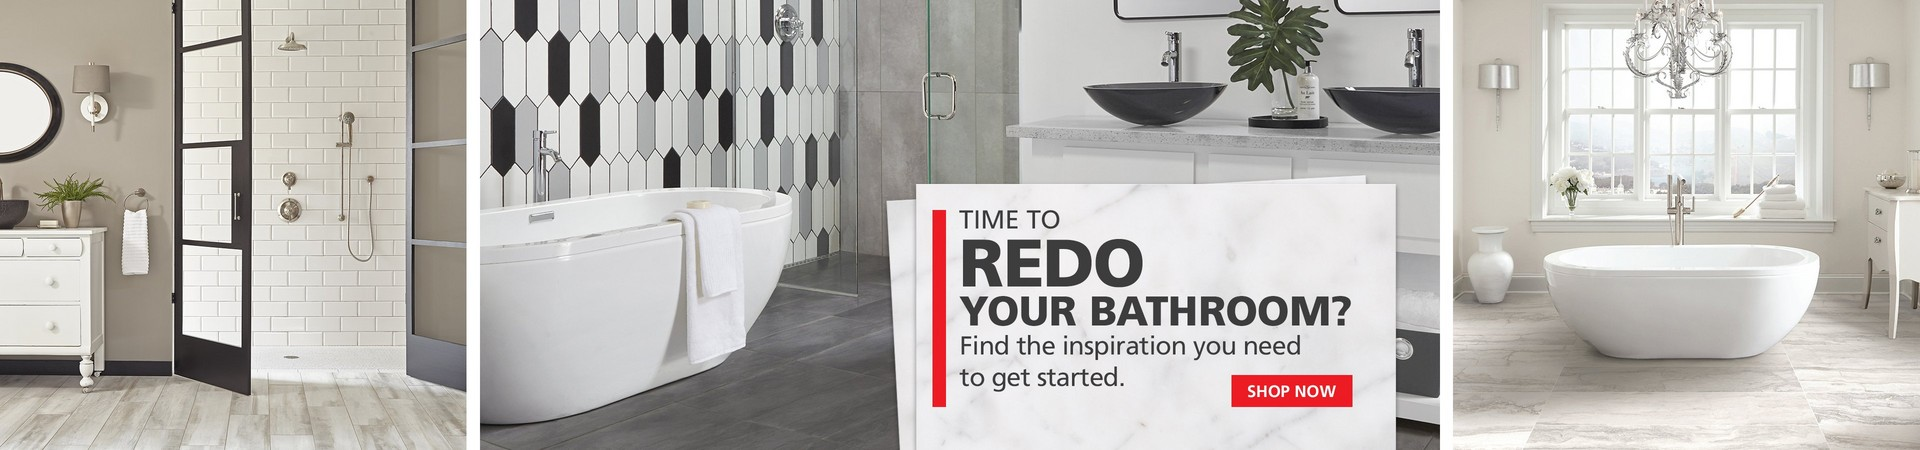 TIME TO REDO YOUR BATHROOM?